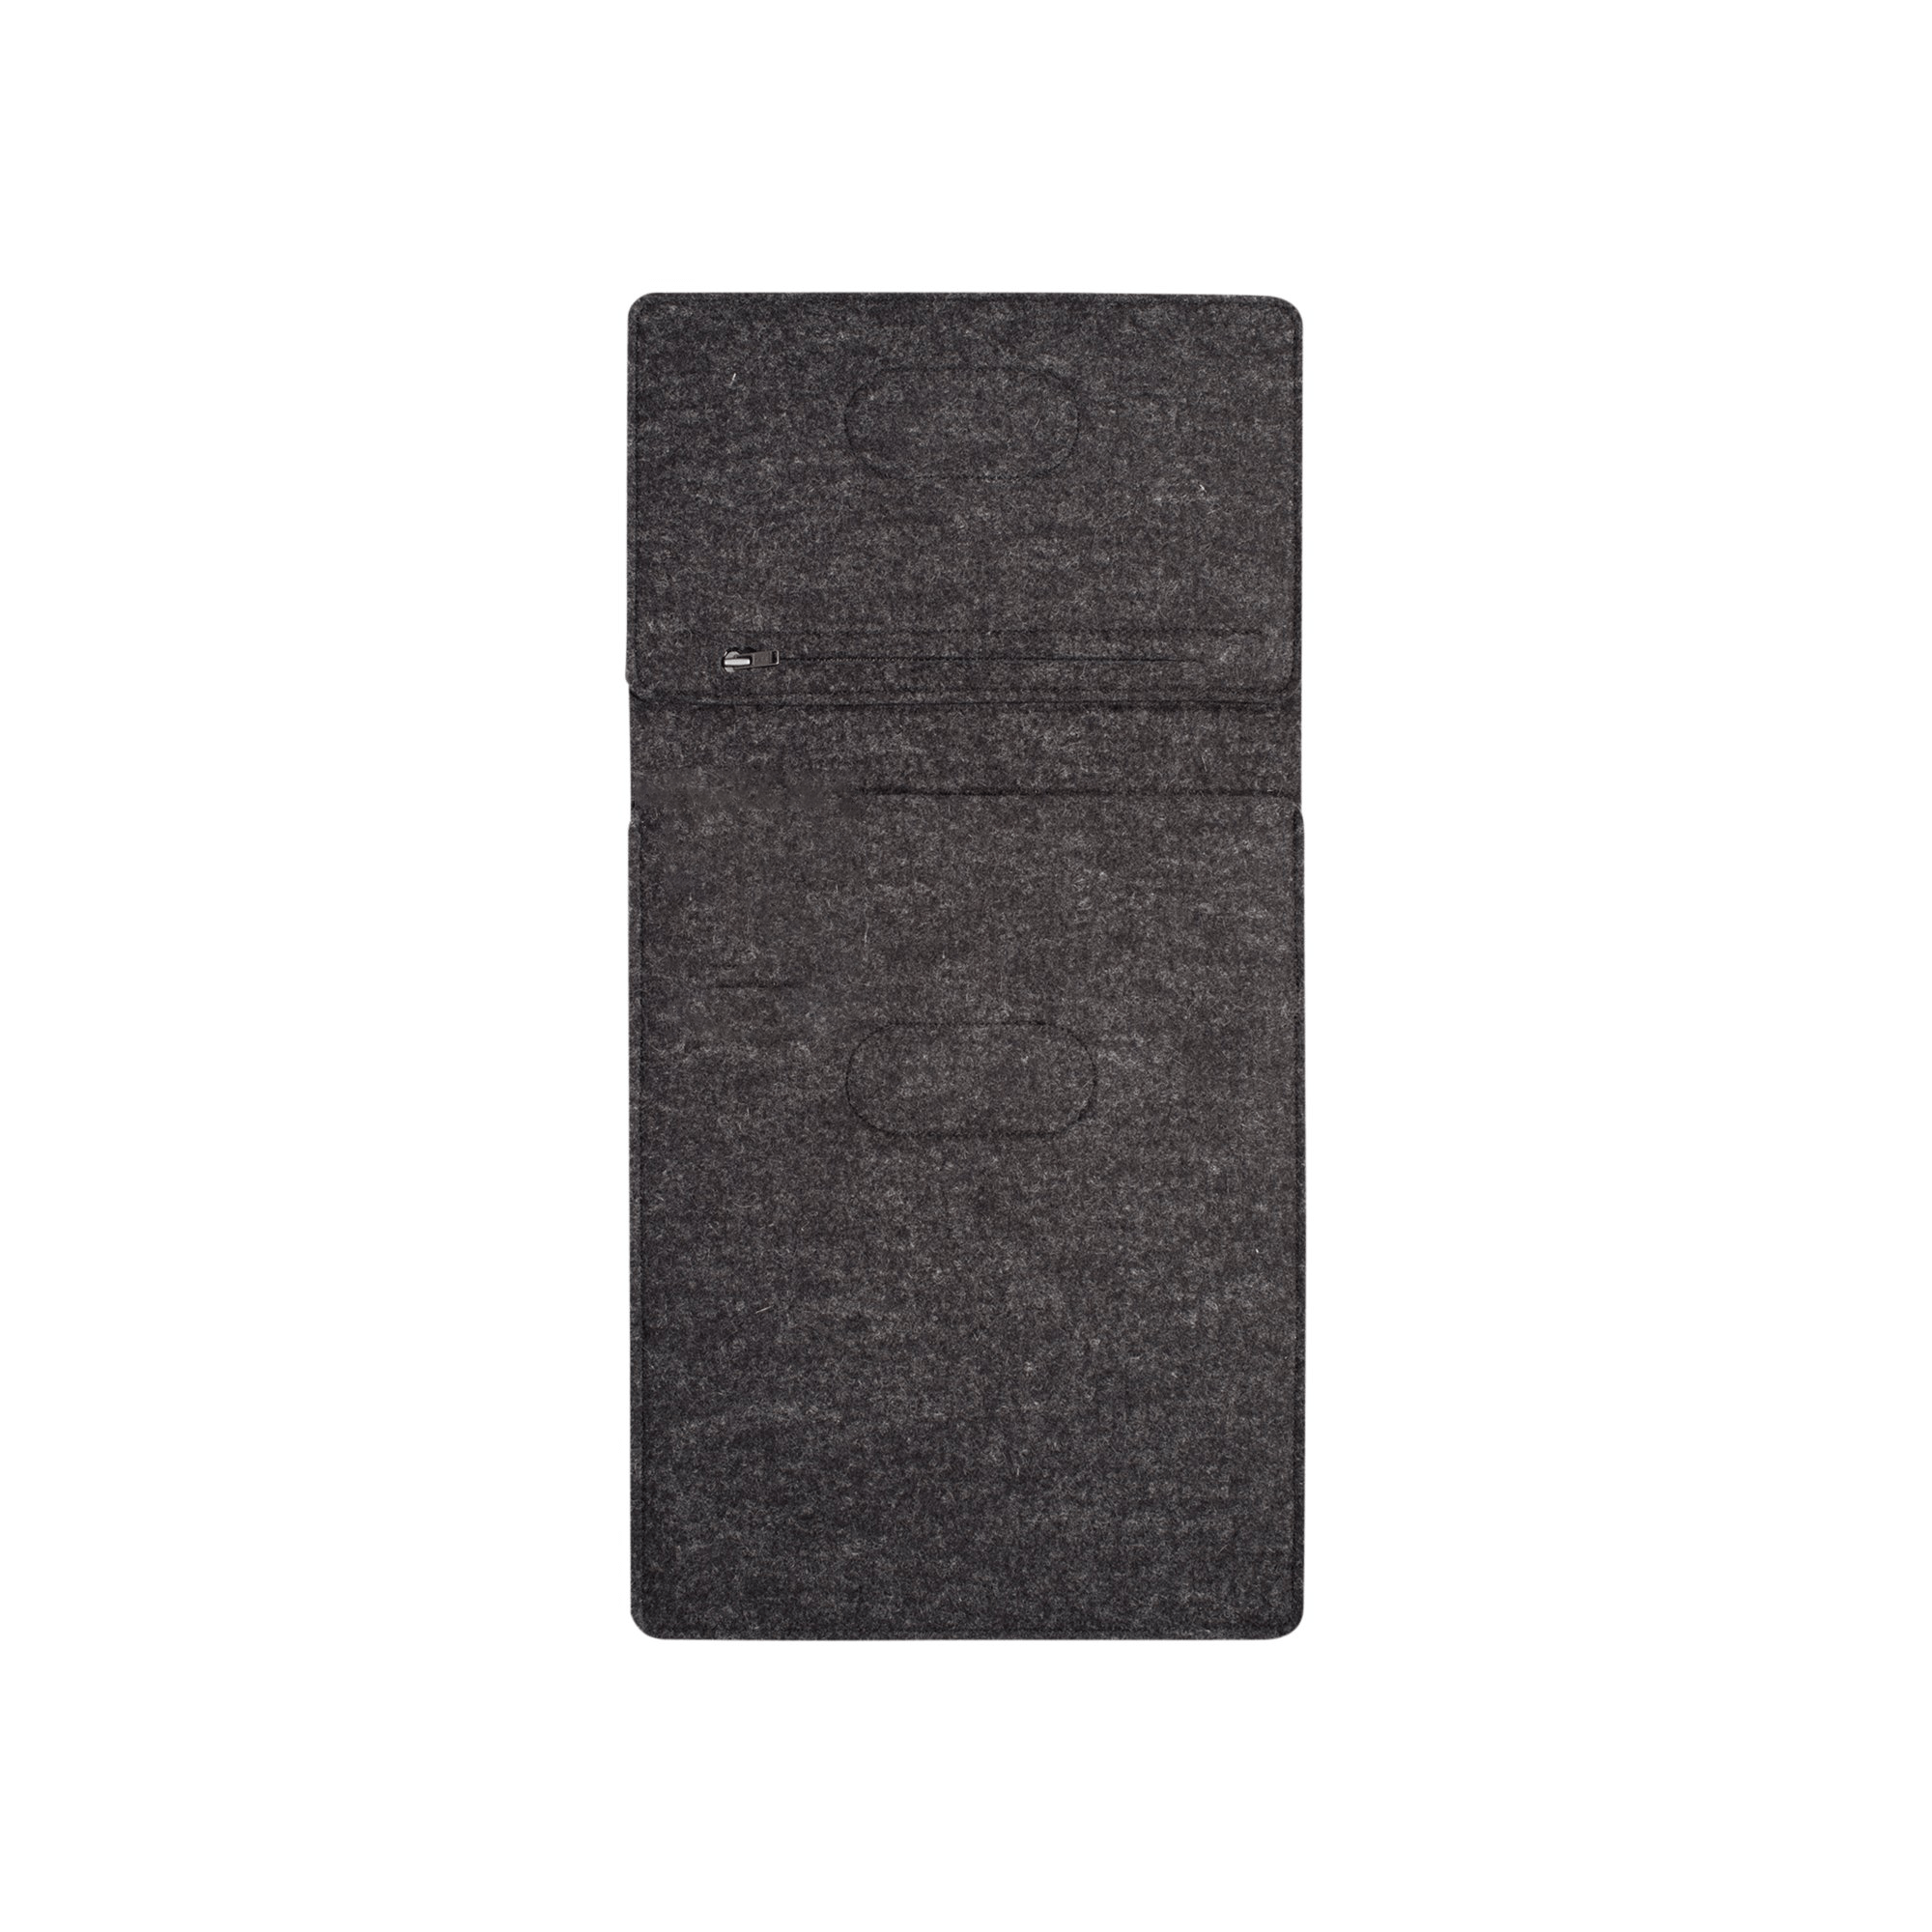 nedrelow Tech Cases Charcoal Magnetic Sleeve